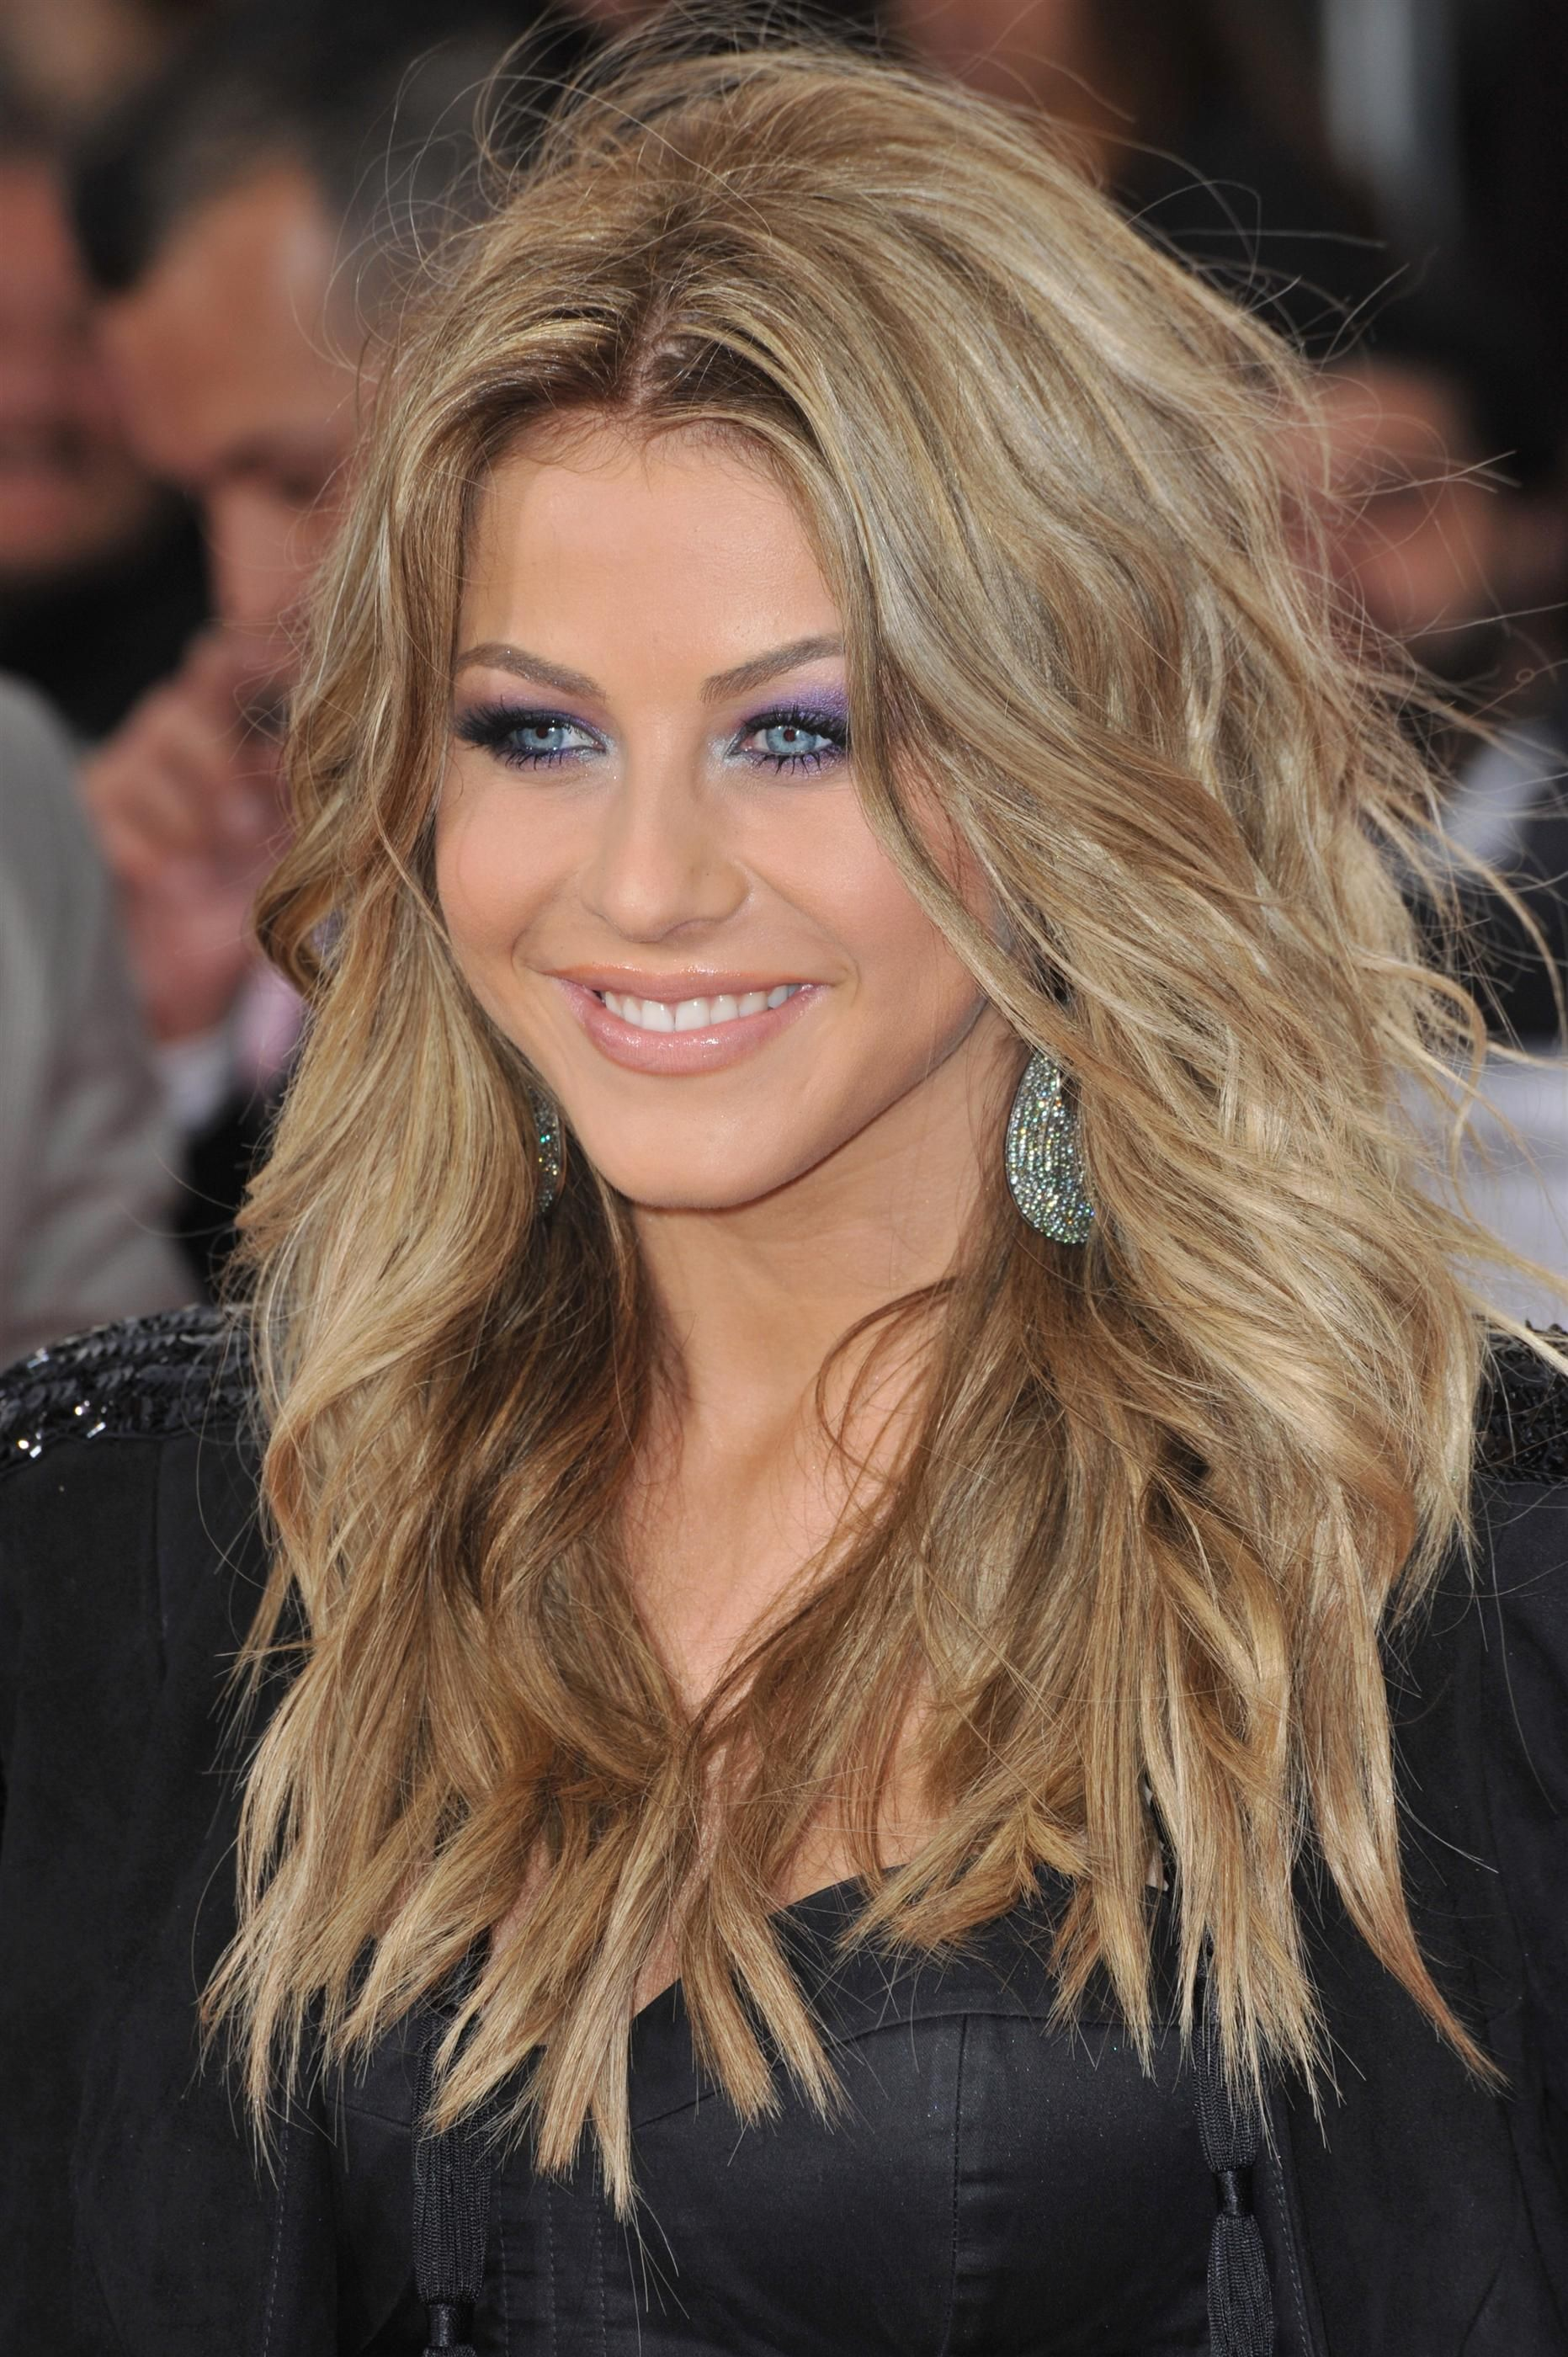 Pretty hair cuts - Find This Pin And More On Pretty Hair By Griderml